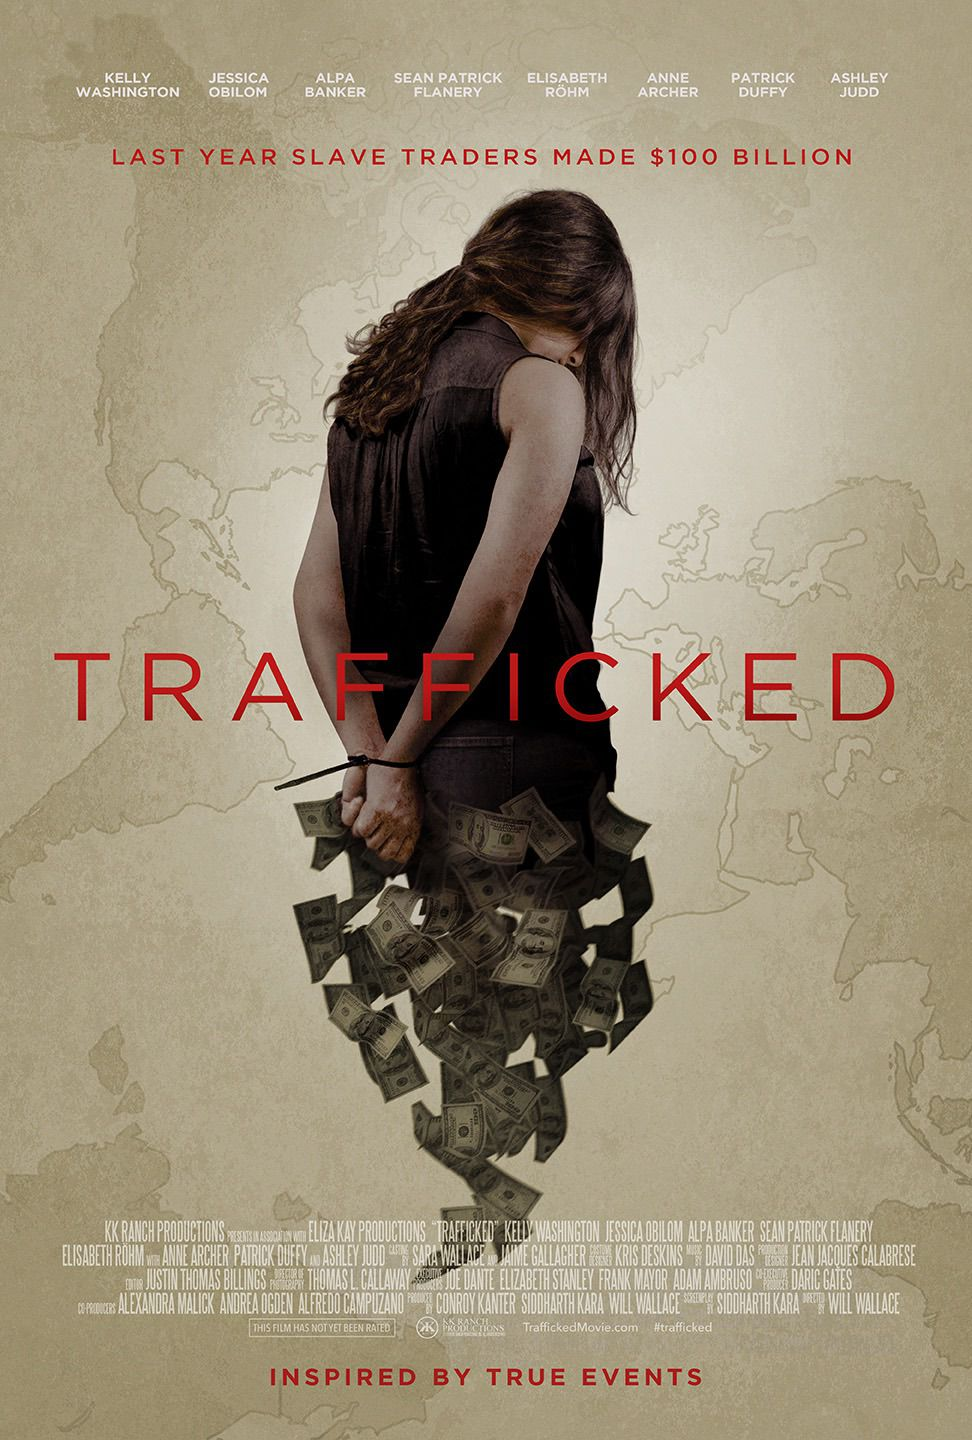 Trafficked by Will Wallace - film poster - cast Elisabeth Röhm, Ashley Judd, Sean Patrick Flanery, Kelly Washington, Jessica Obilom, Alpa Banker, Anne Archer